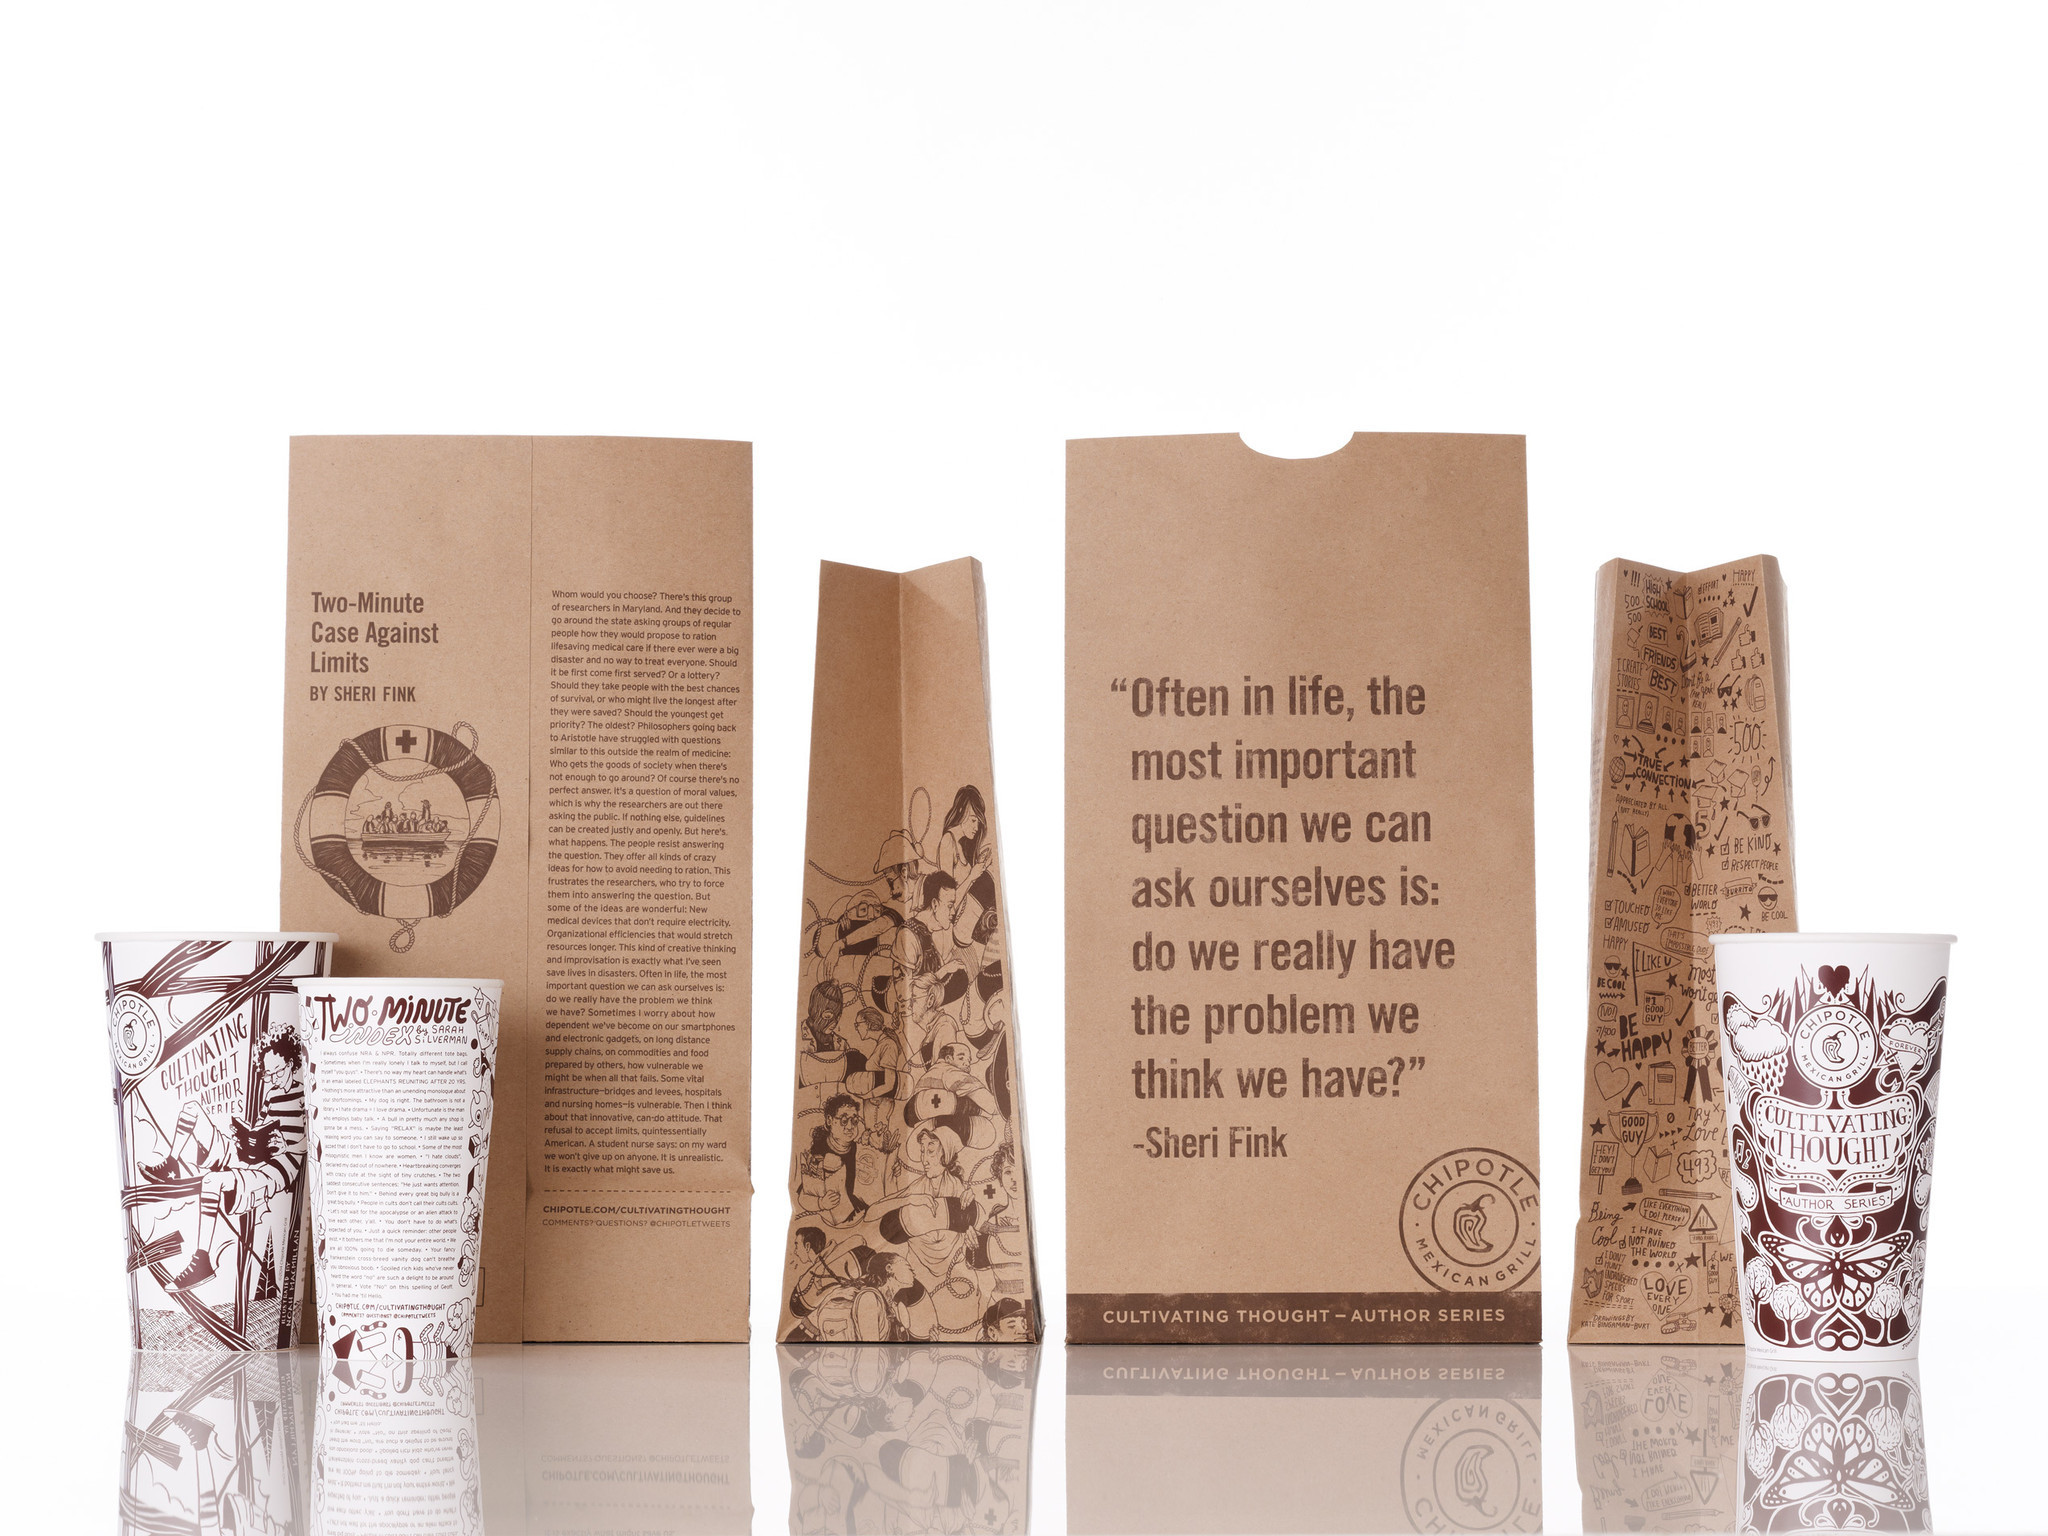 chipotle launches essay contest for cups and 20k college chipotle launches essay contest for cups and 20k college scholarships la times